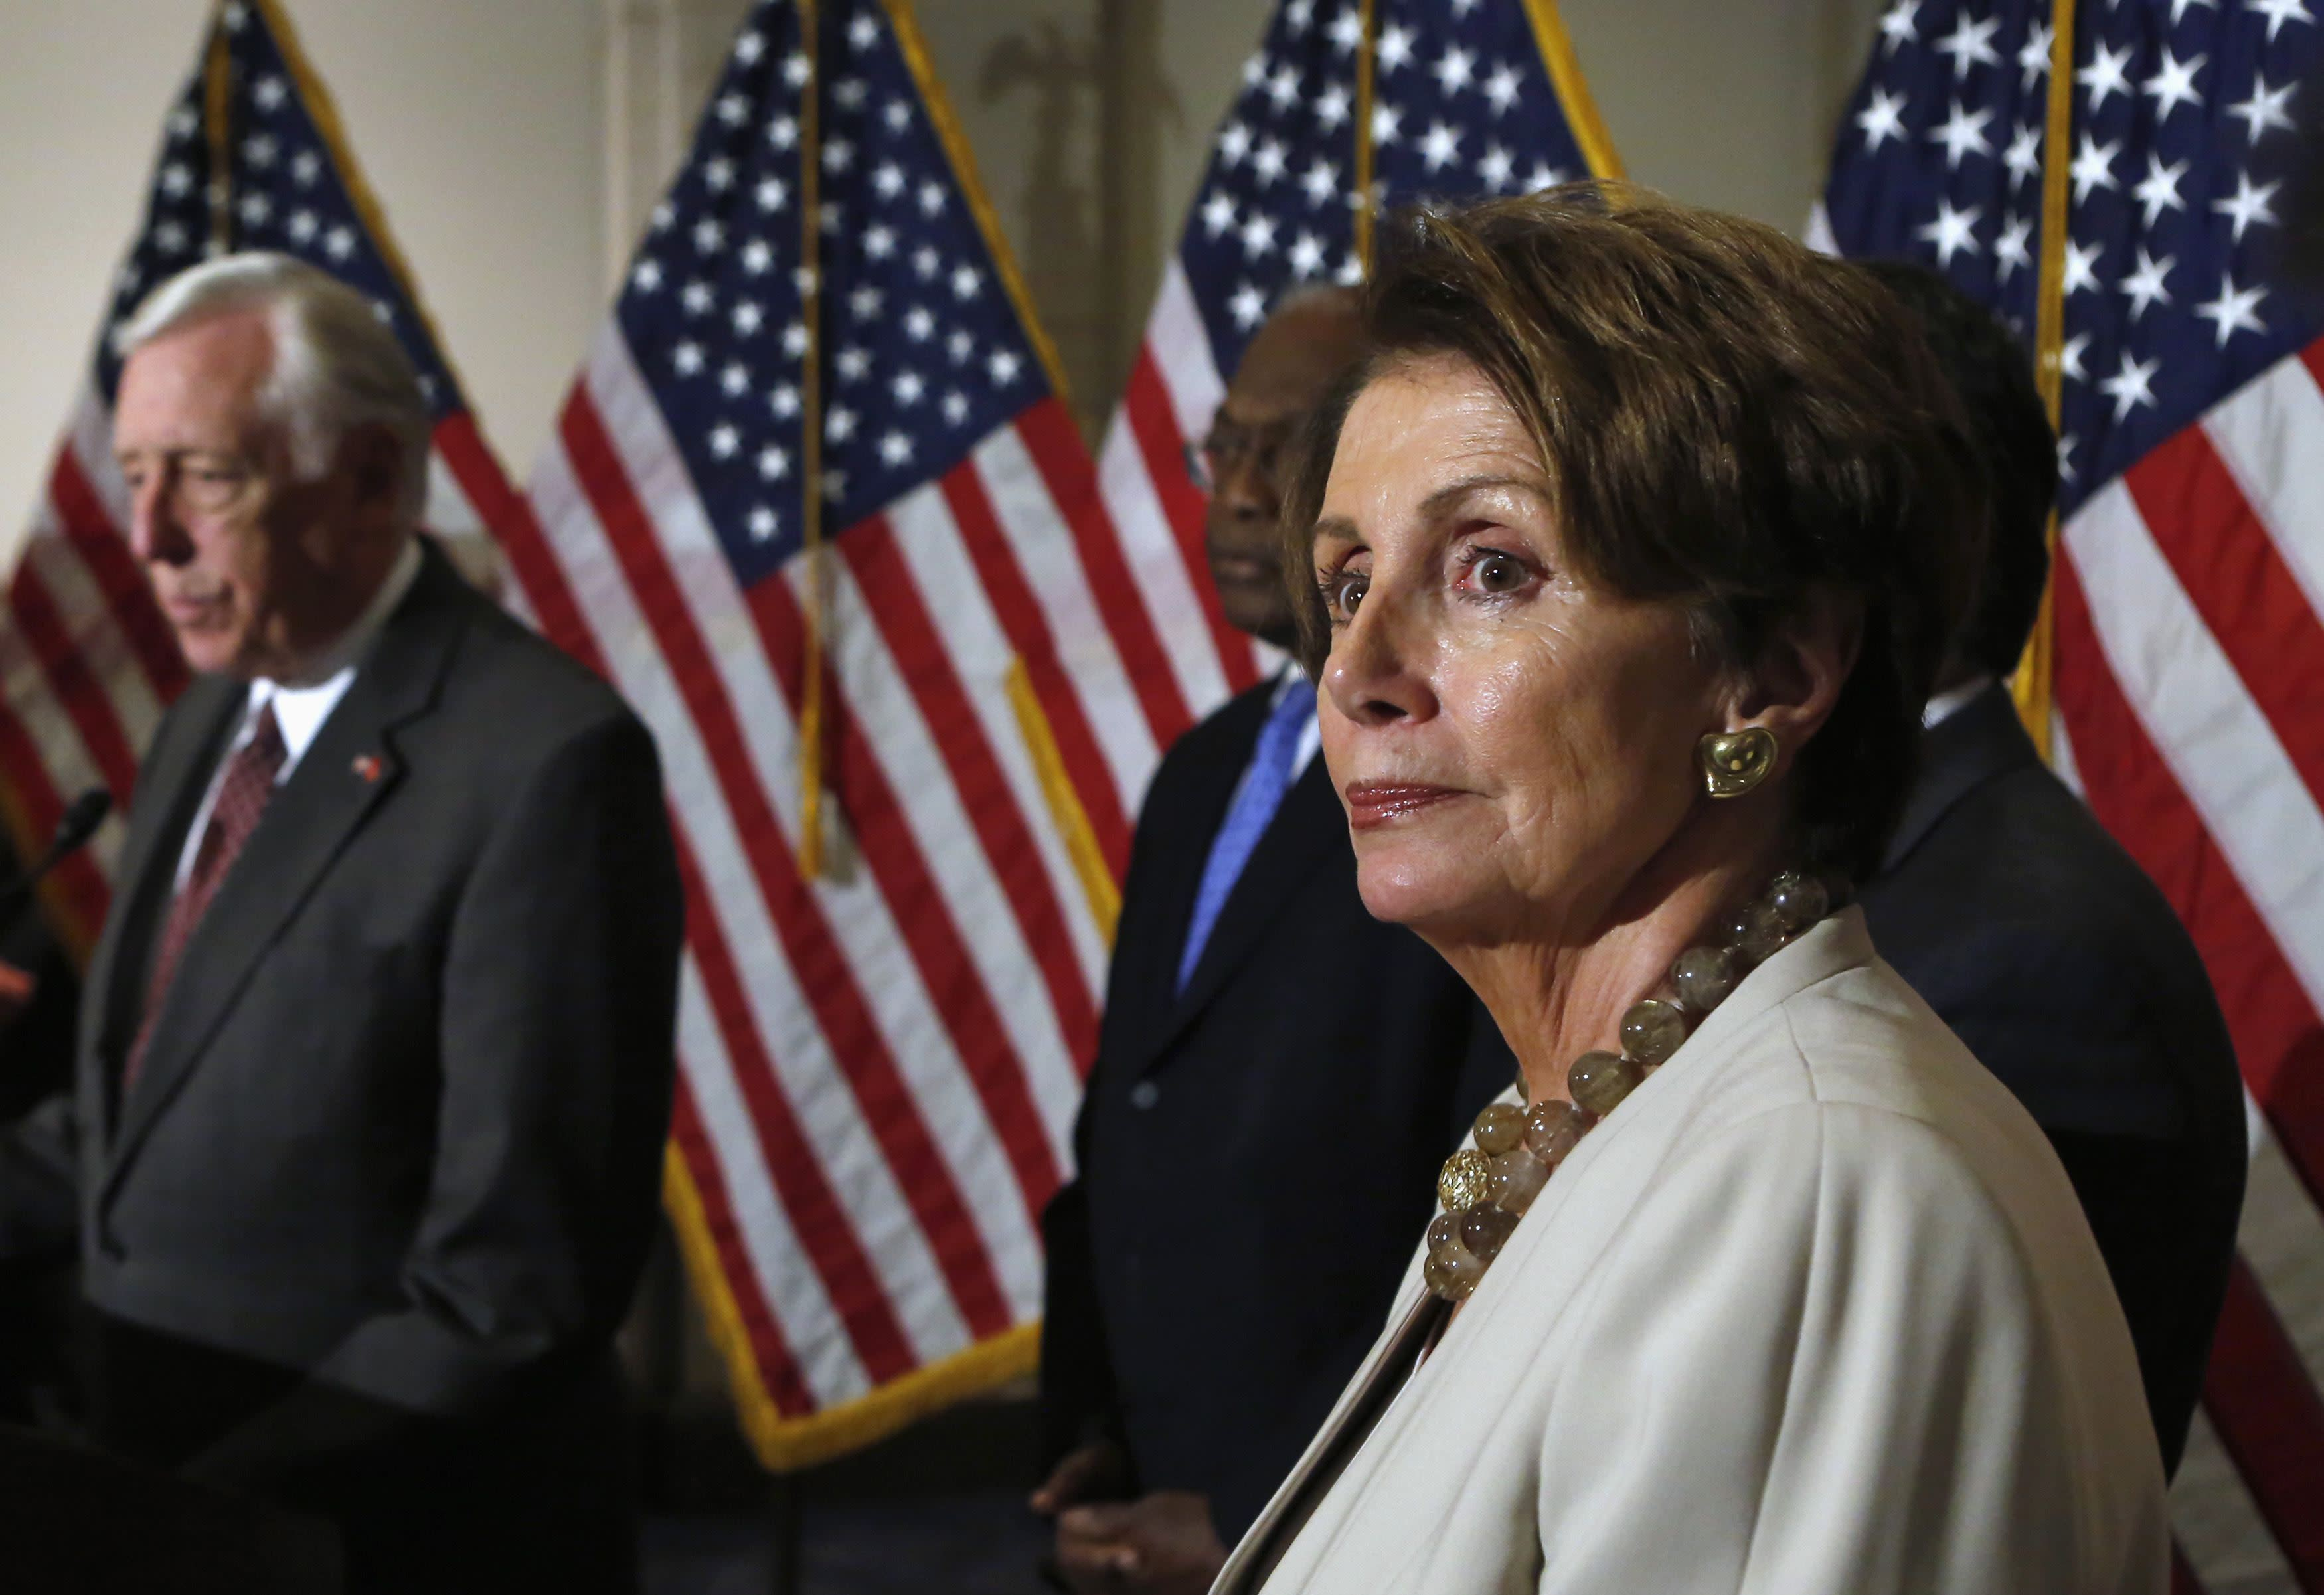 U.S. House Minority Leader Pelosi and Representative Hoyer talk to the media on Obamacare following a Caucus meeting on Capitol Hill in Washington